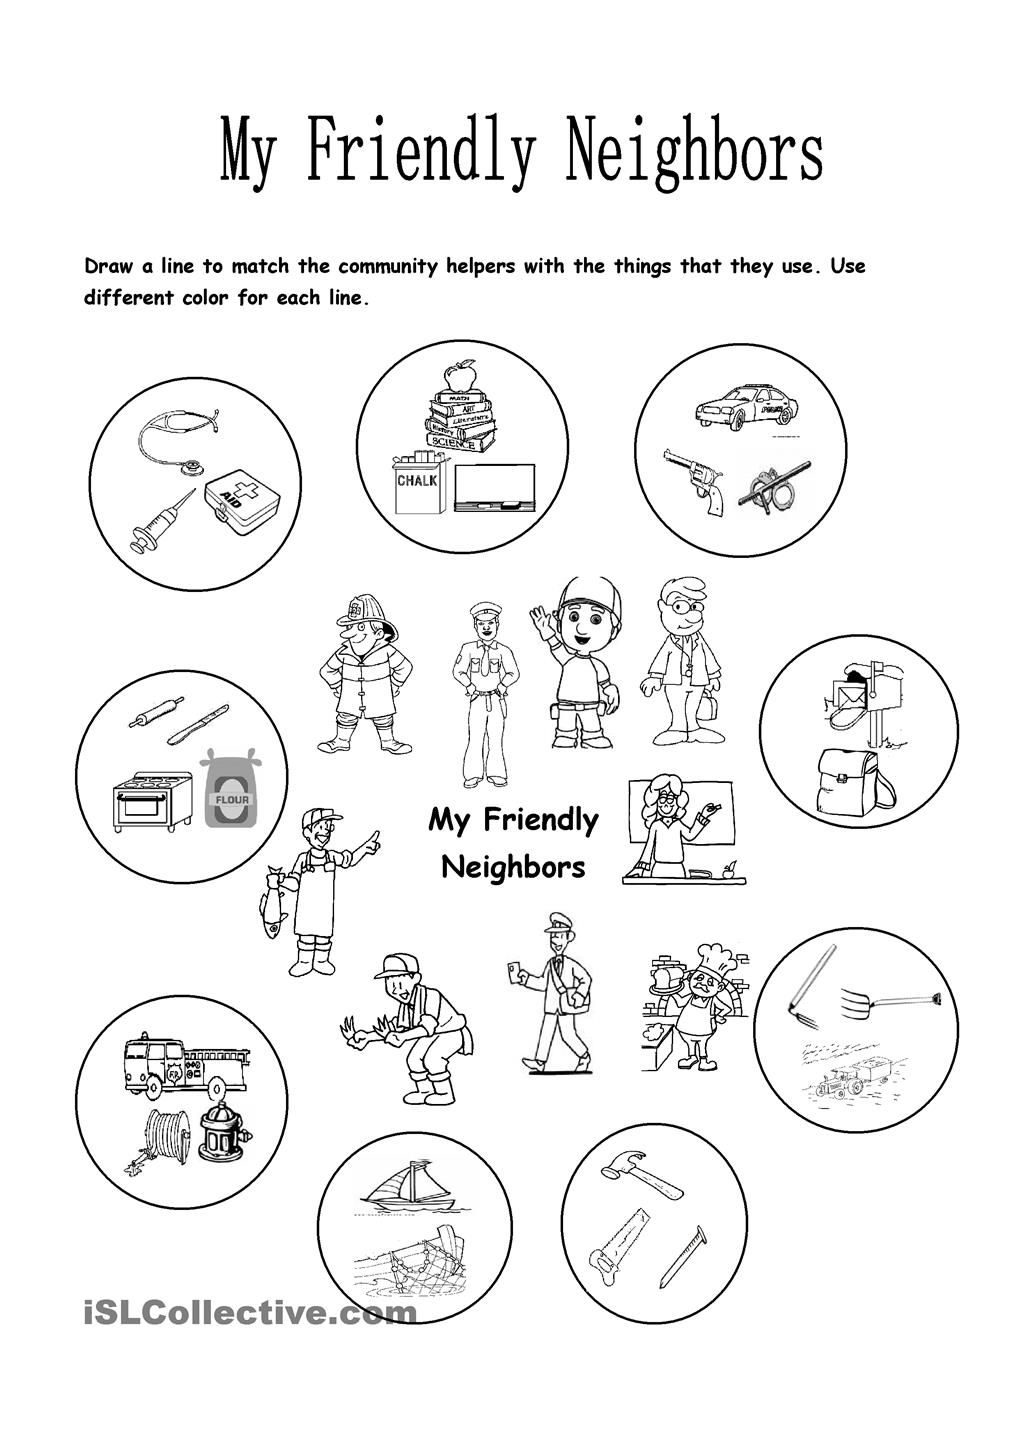 Worksheets Community Helpers Kindergarten Worksheets my friendly neighbors community pinterest this worksheet focuses on the helpers and things that they use children will have to match correct tools